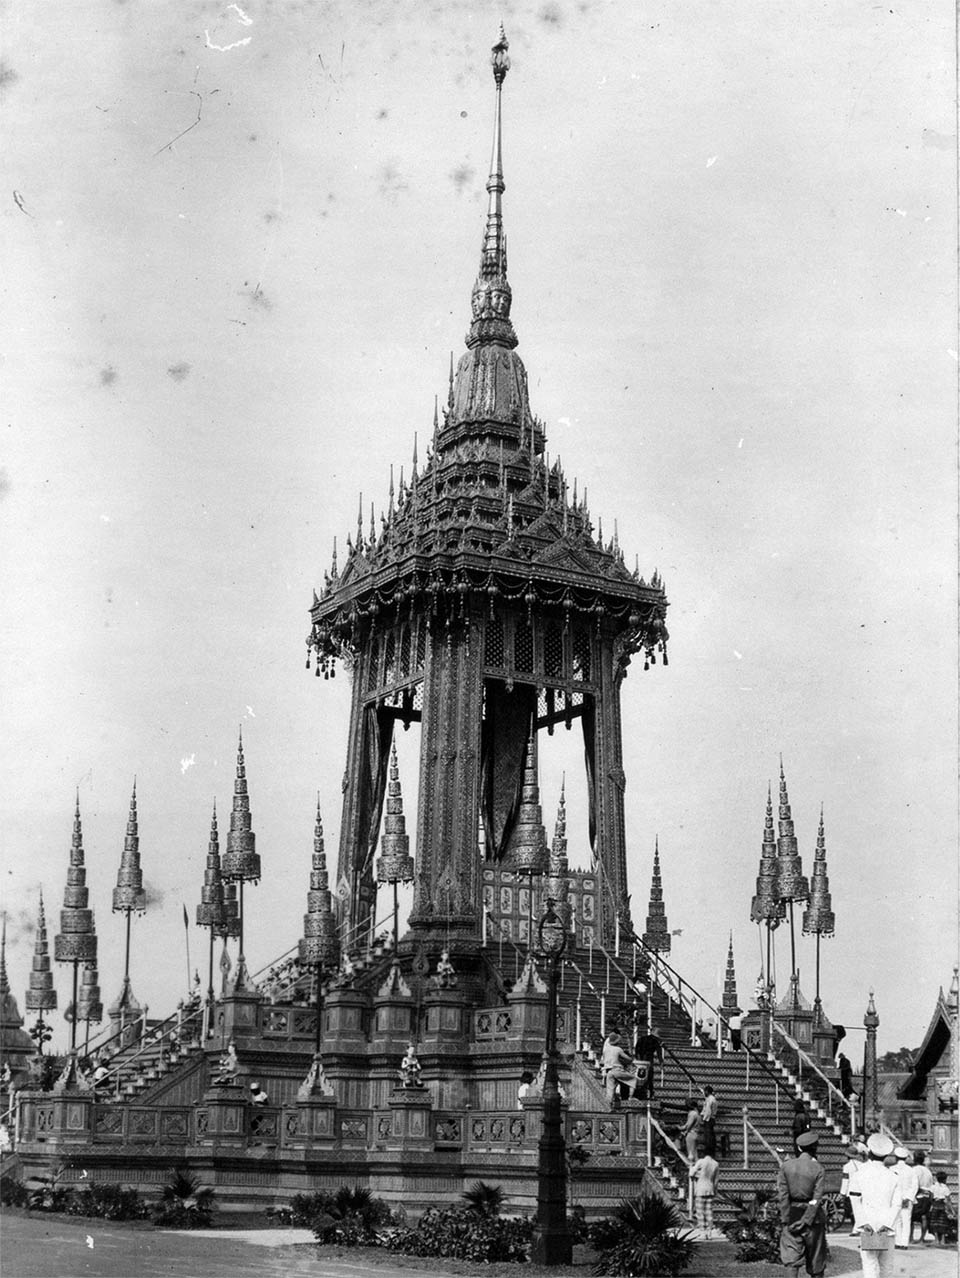 The Phra Meru Mas for King Rama VI